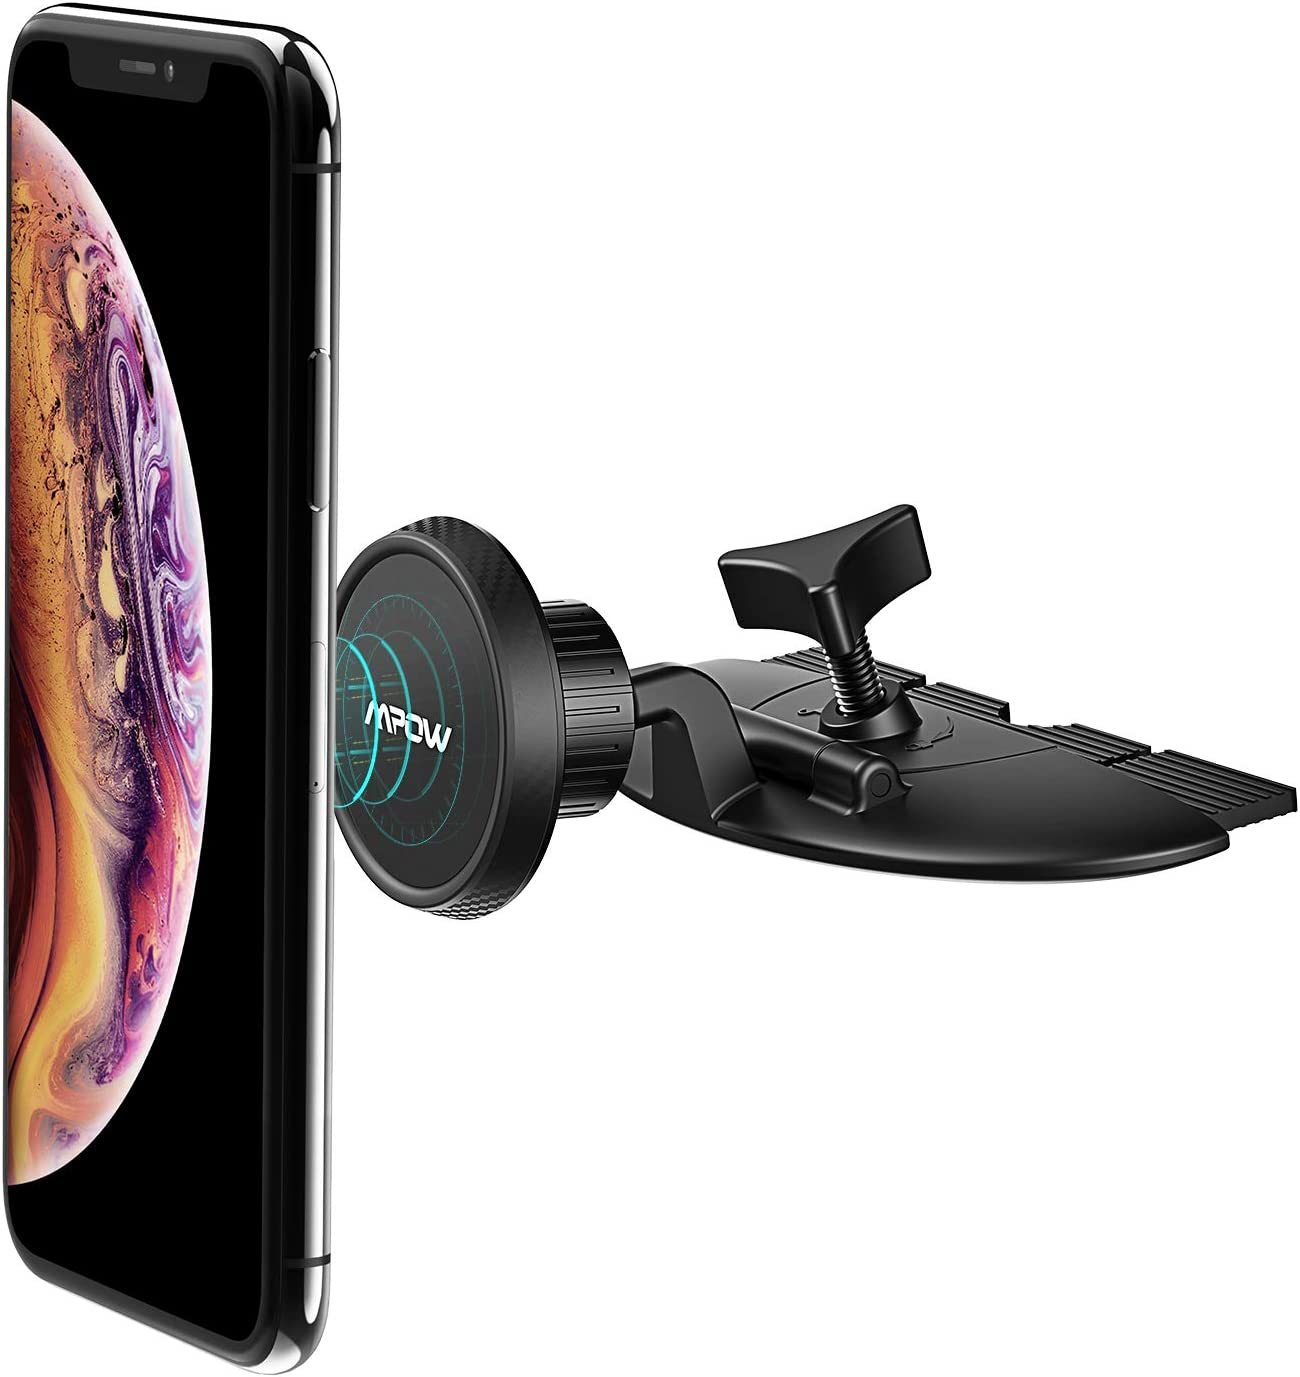 Universal Car Phone Mount Compatible with iPhone 11//11Pro//11Pro Max//Xs MAX//XR//XS//X//8//8Plus Mpow CD Slot Car Phone Holder Galaxy S10//S10+//S10e//S9//S9+//N9//S8 and Most Phones Magnetic Phone Car Mount